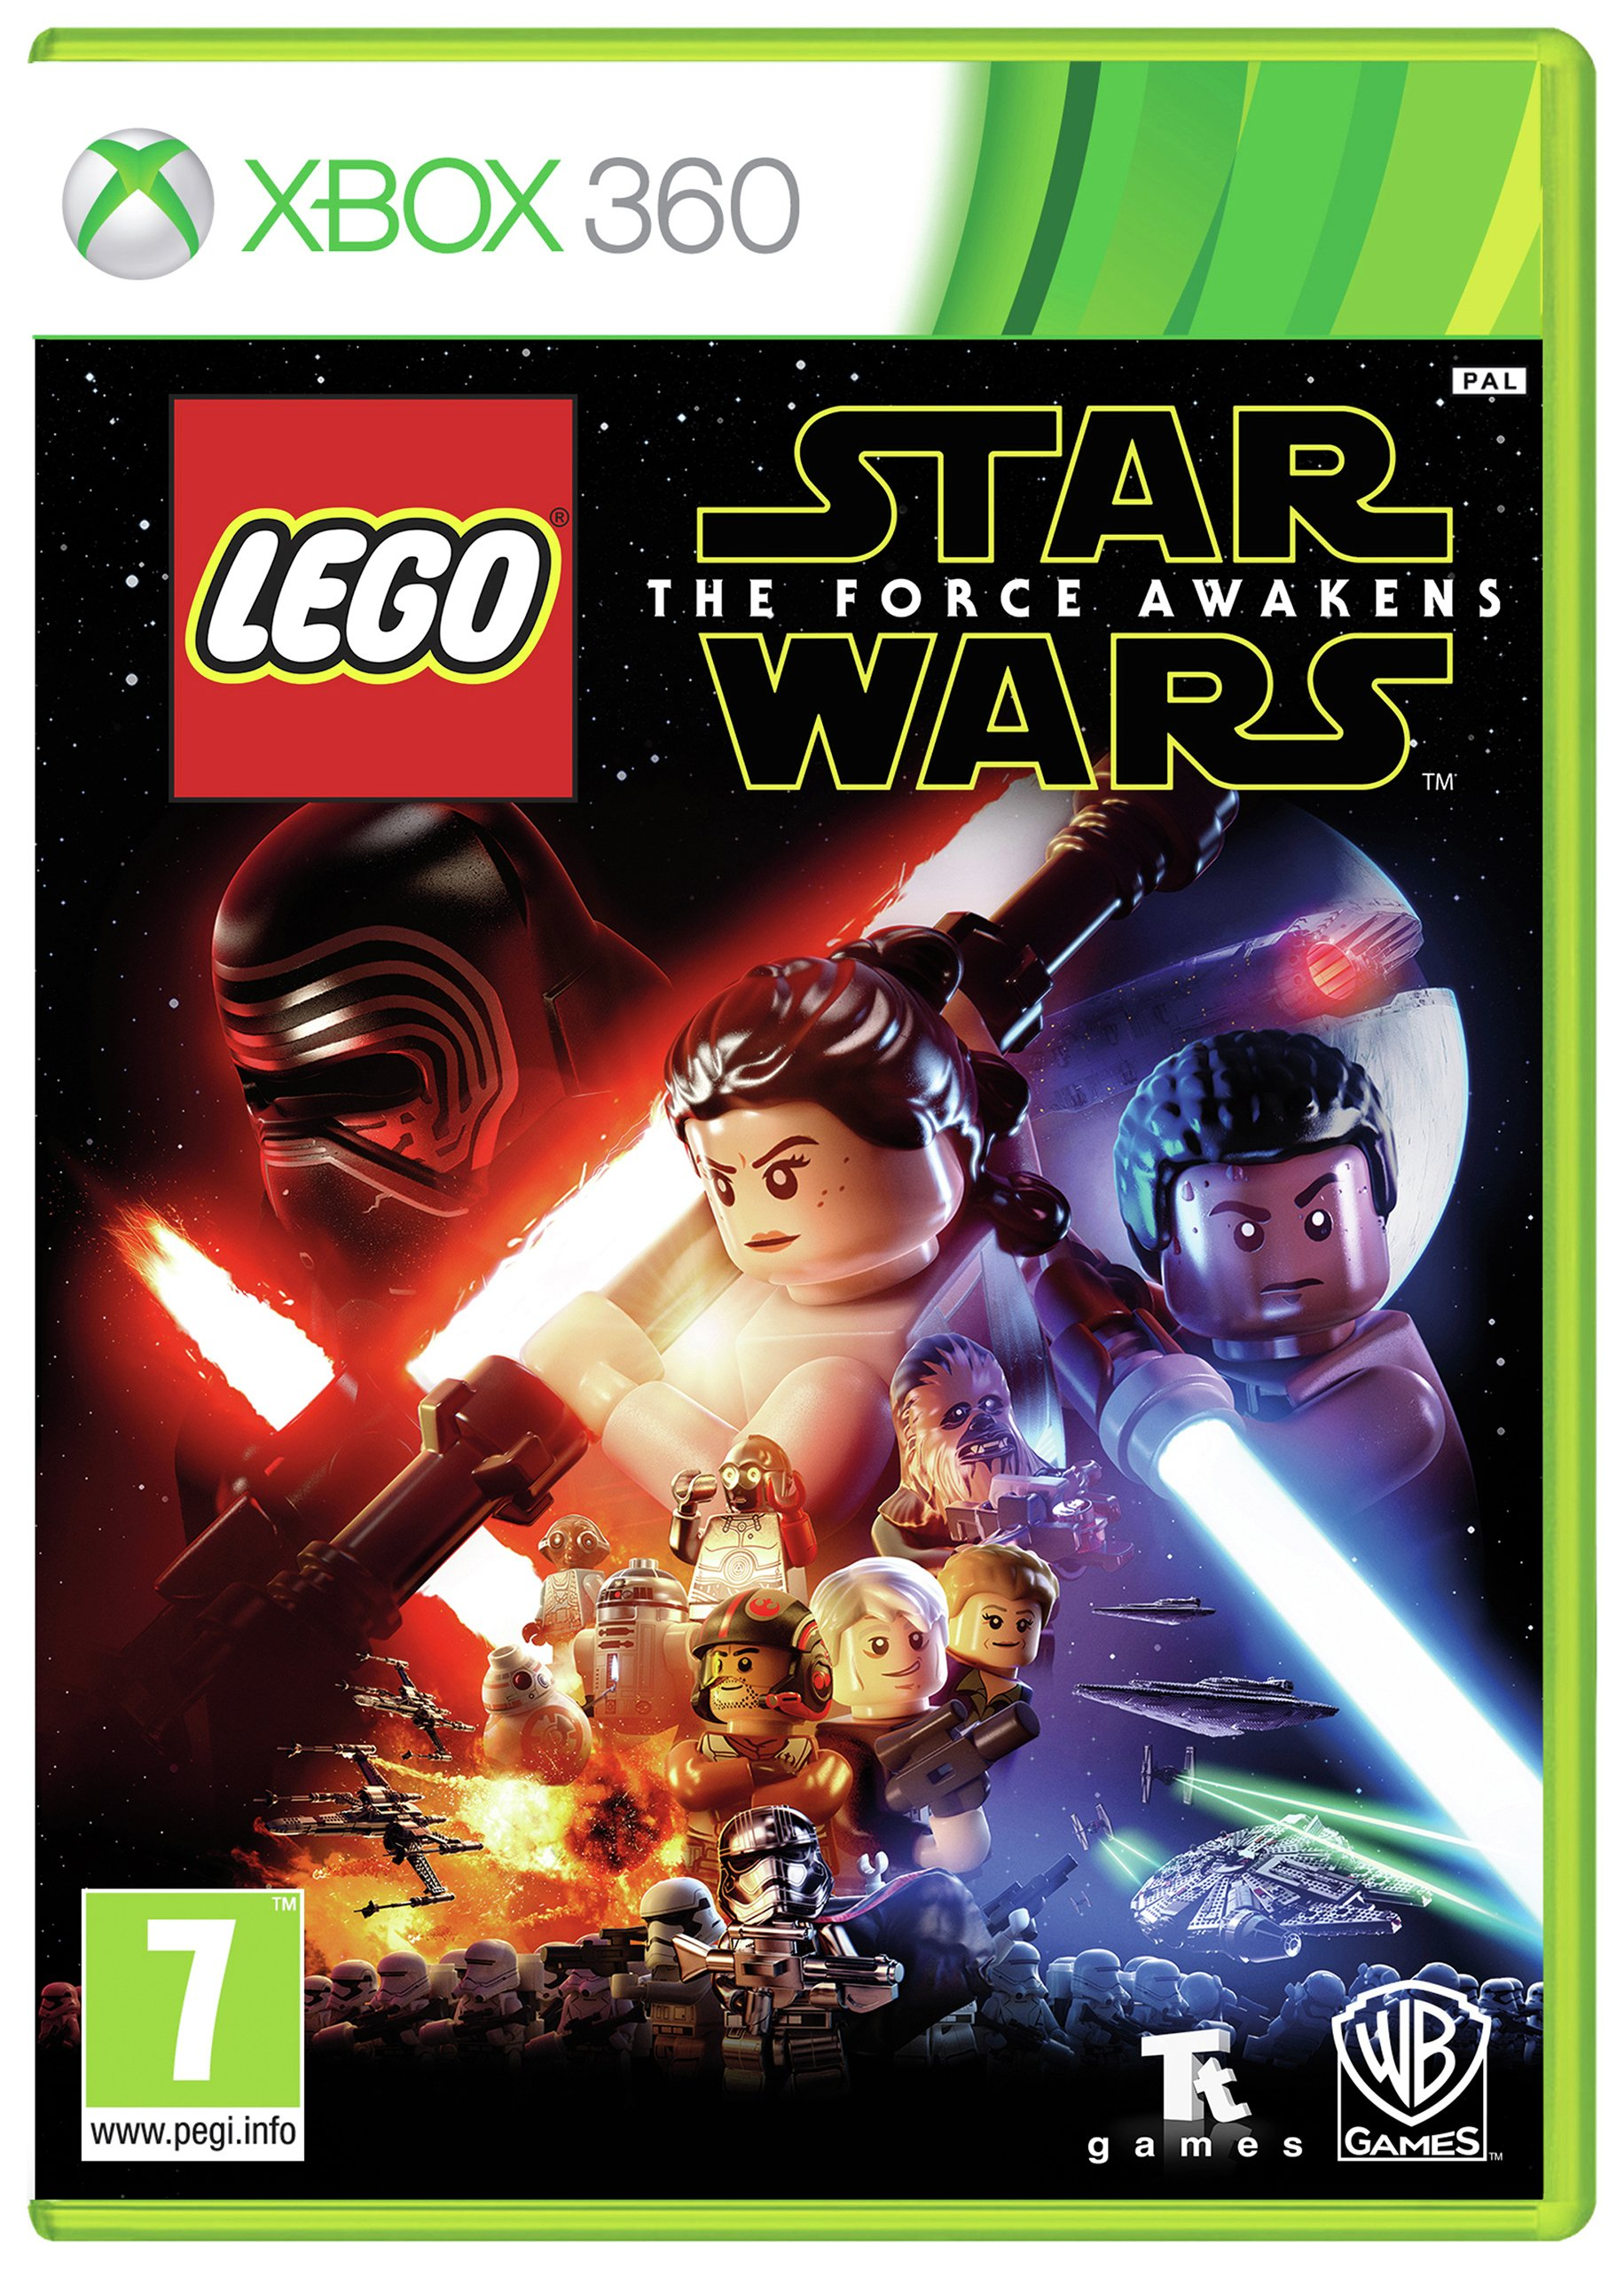 LEGO LEGO Star Wars - The Force Awakens - Xbox - 360 Game.